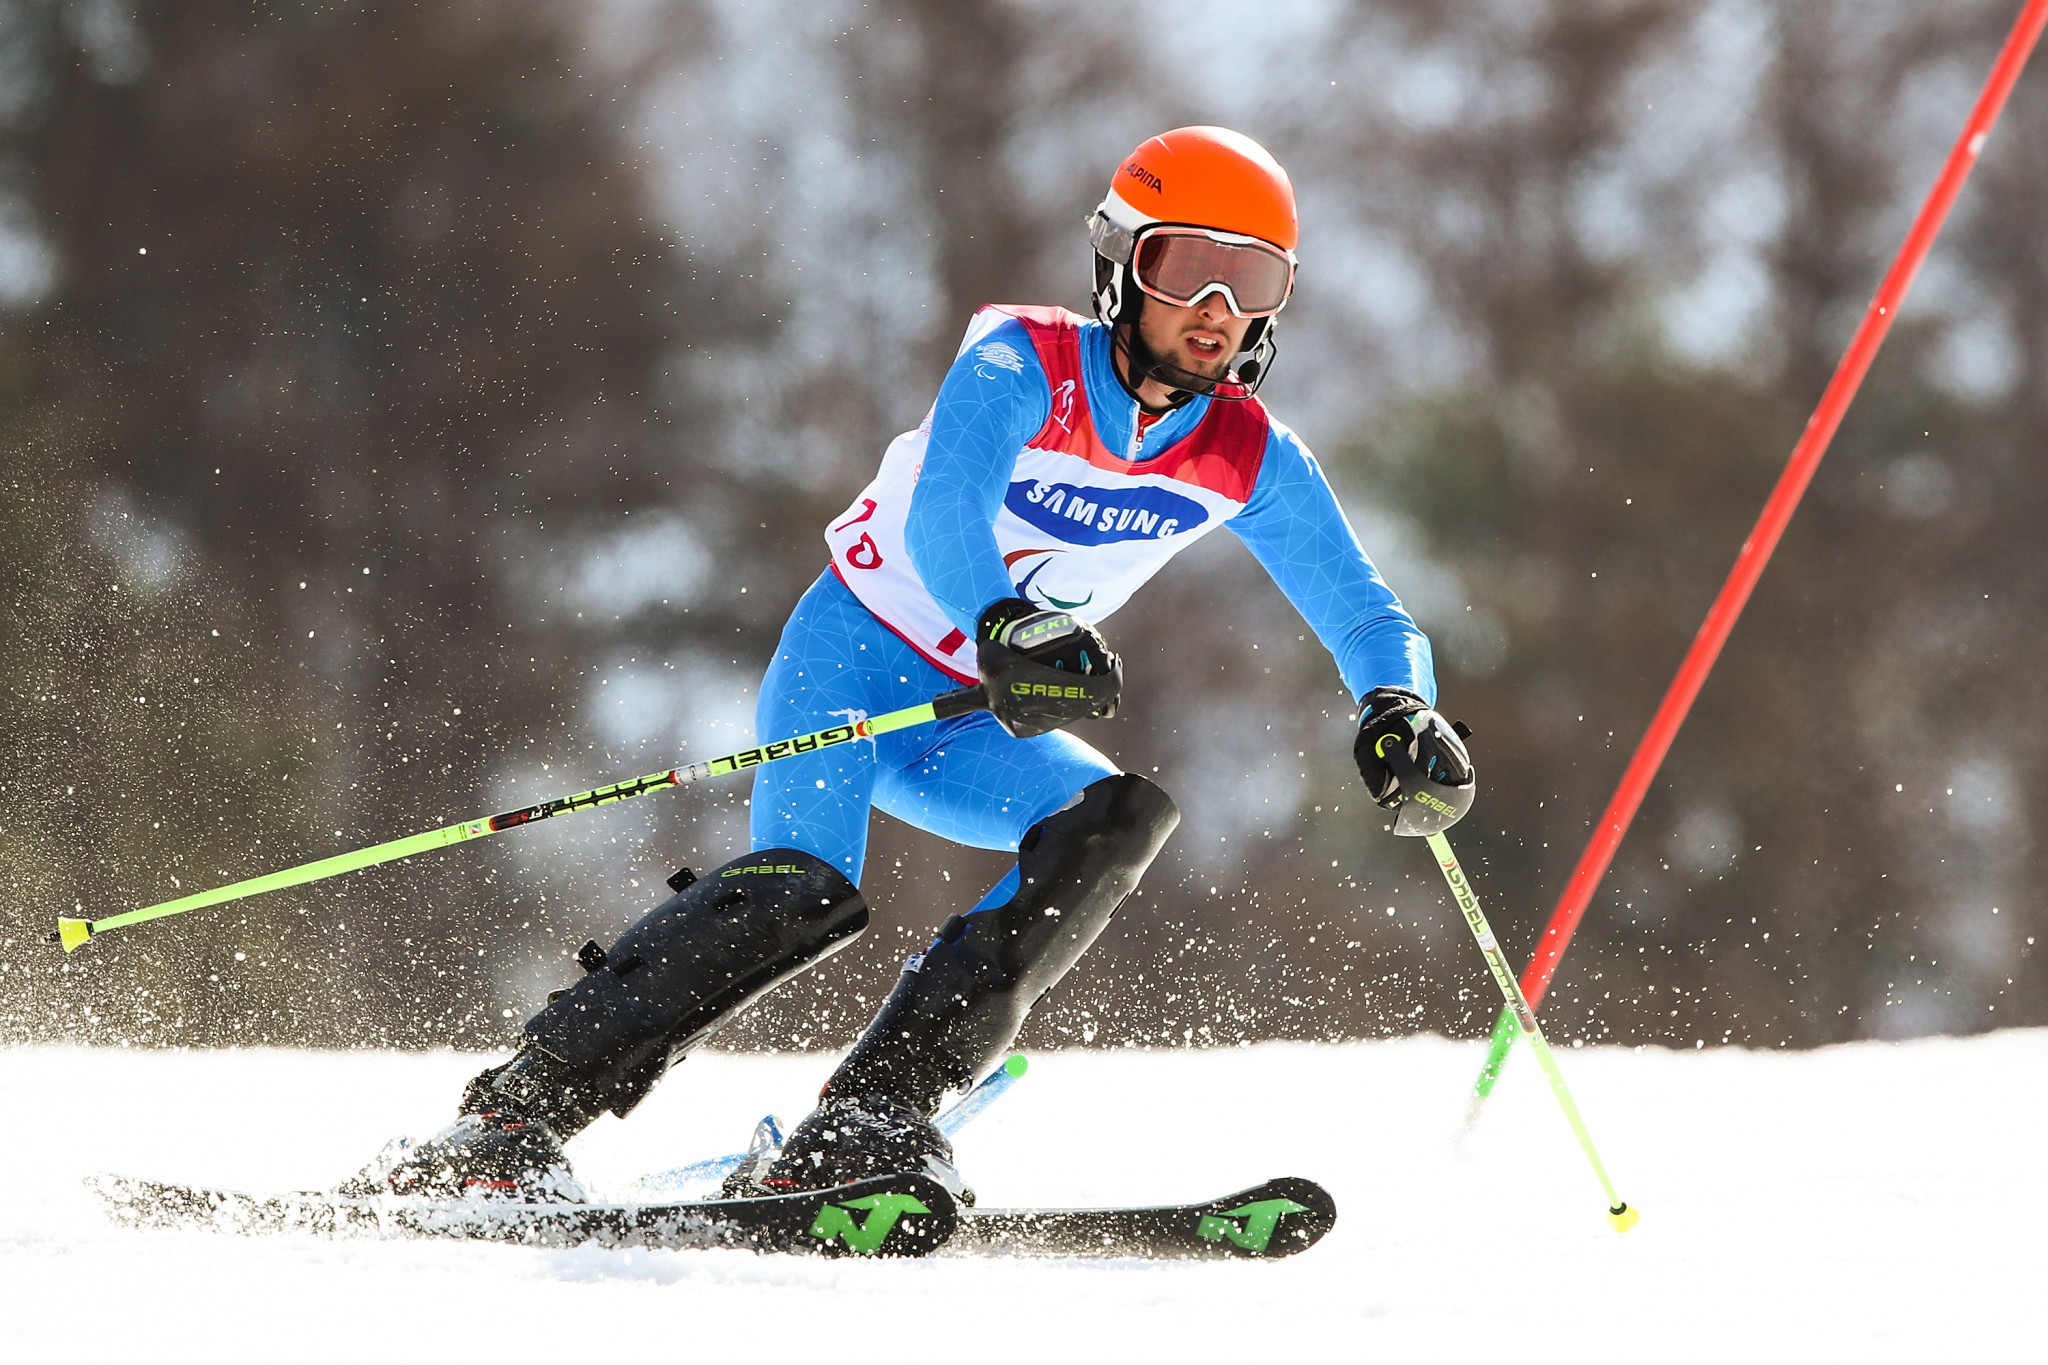 Bertagnolli looking to add another title at 2019 World Para Alpine Skiing Championships